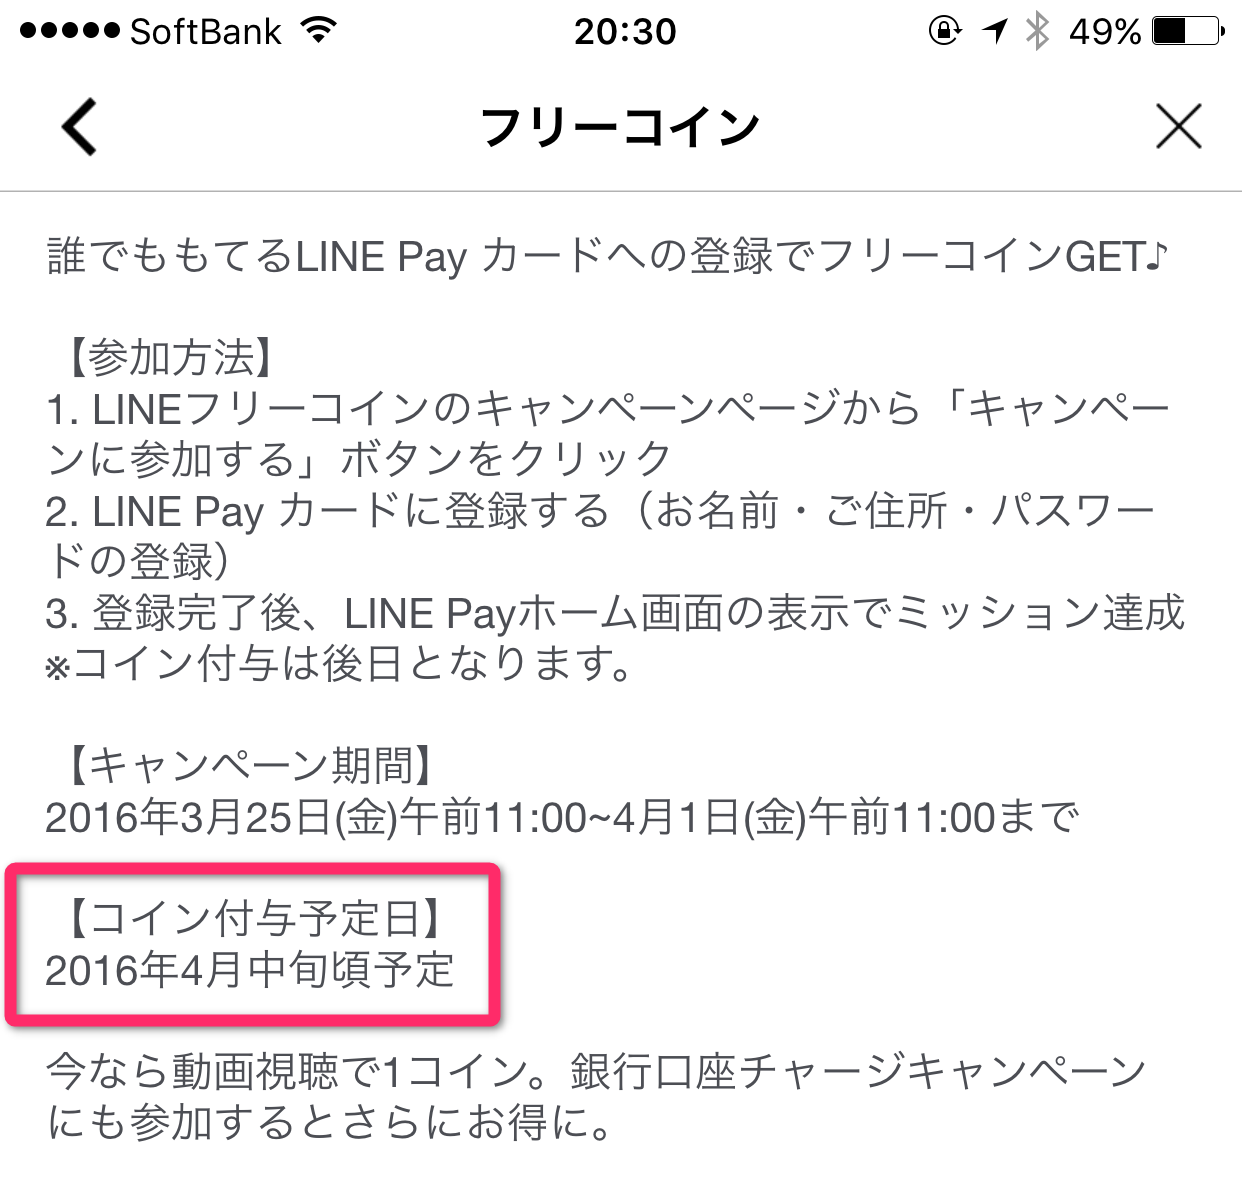 naver-line-line-pay-card-75-free-coins-failure-details